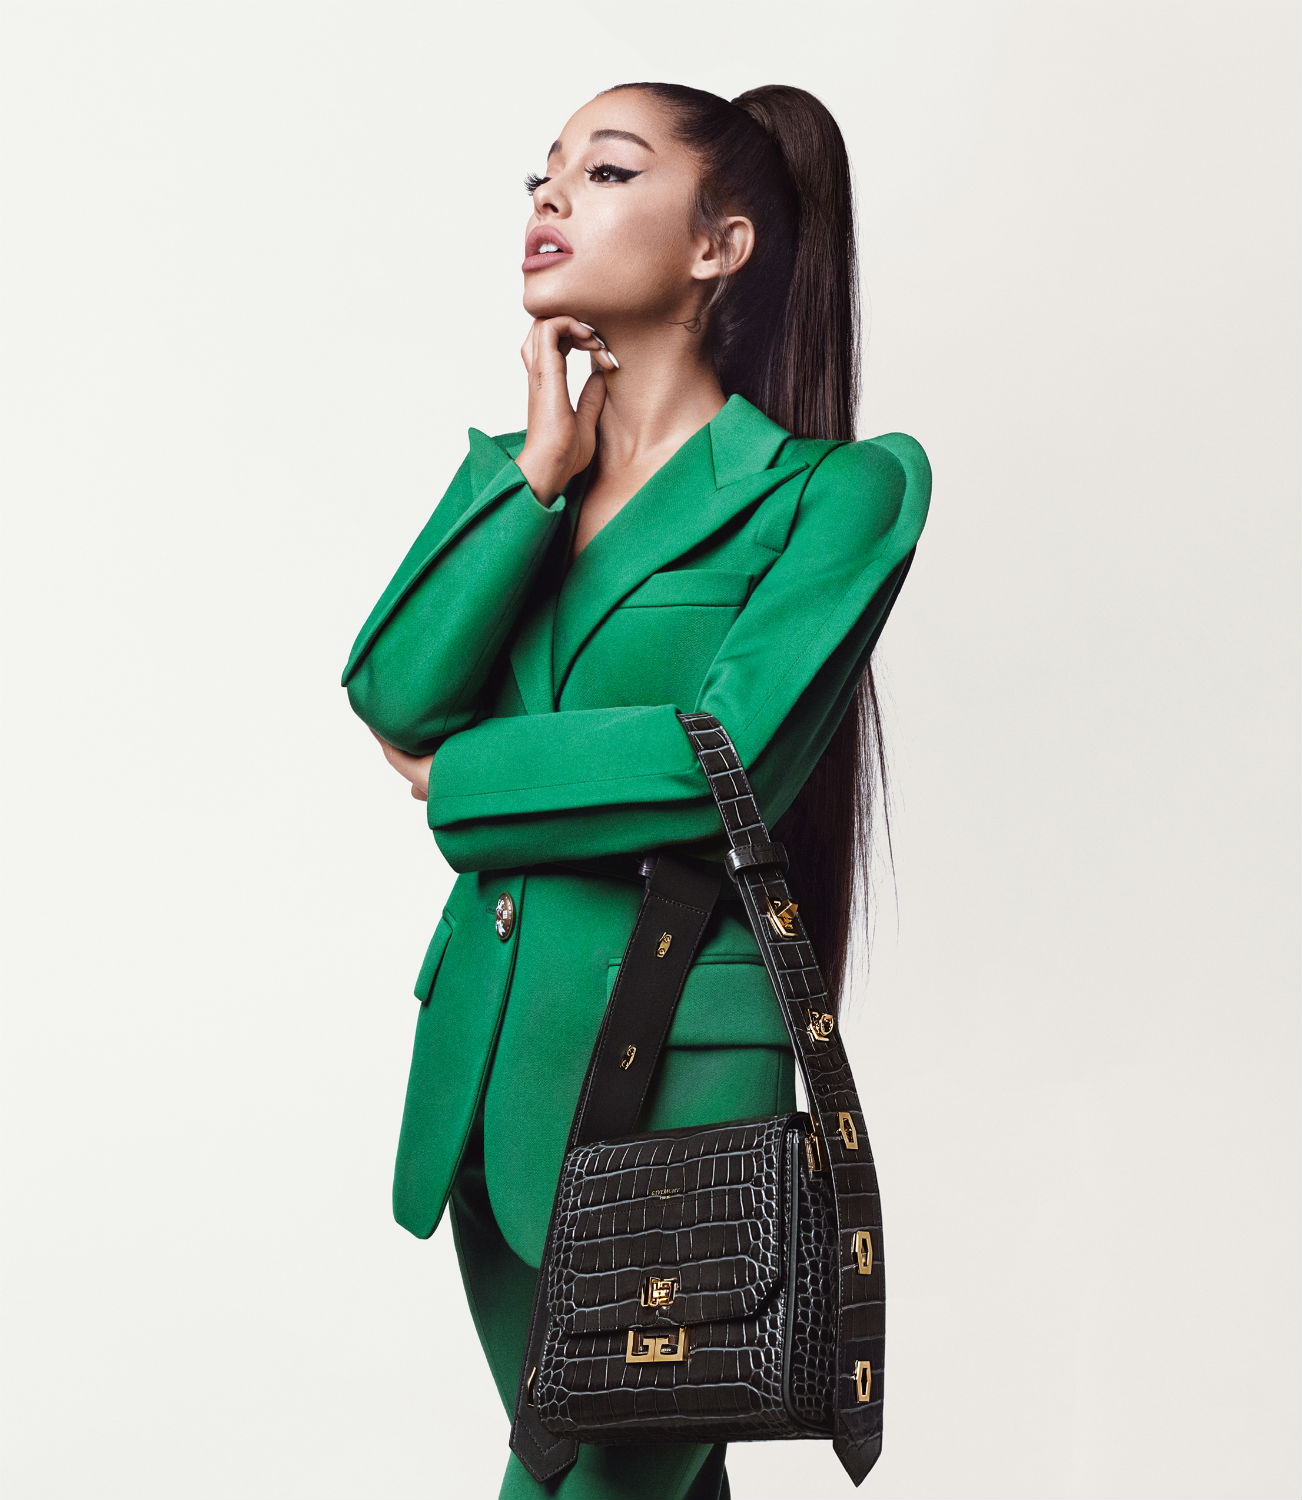 Ariana Grande posed for her first campaign with Givenchy